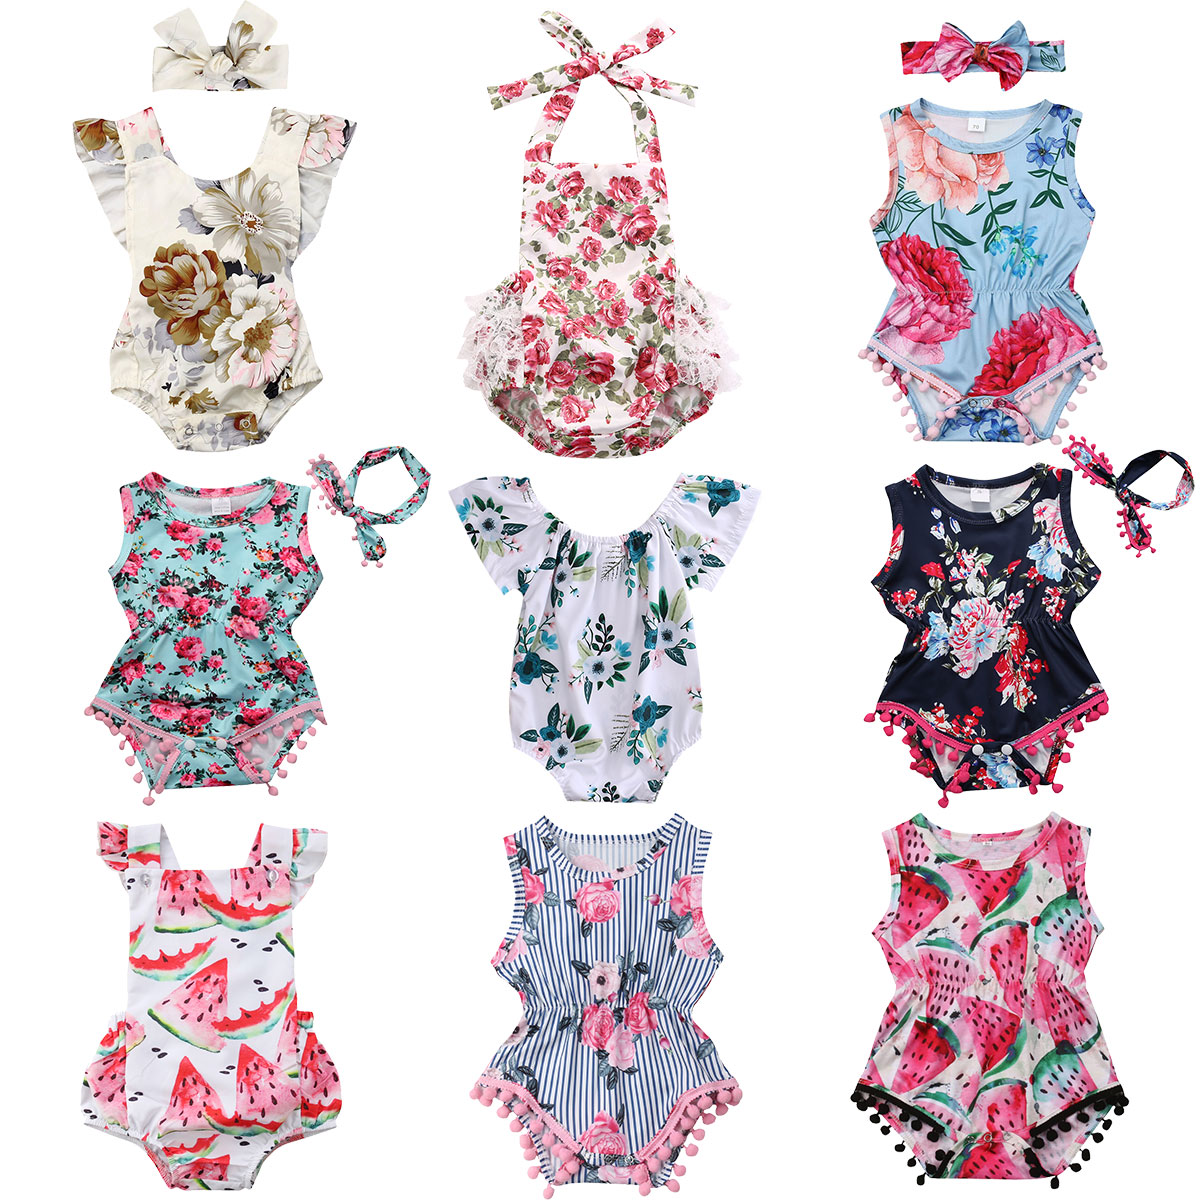 Infant Newborn Baby Girls Romper Summer Baby Clothes Flower Watermelon Print Tassel Jumpsuit Playsuit Sunsuit Baby Girl Costumes(China)